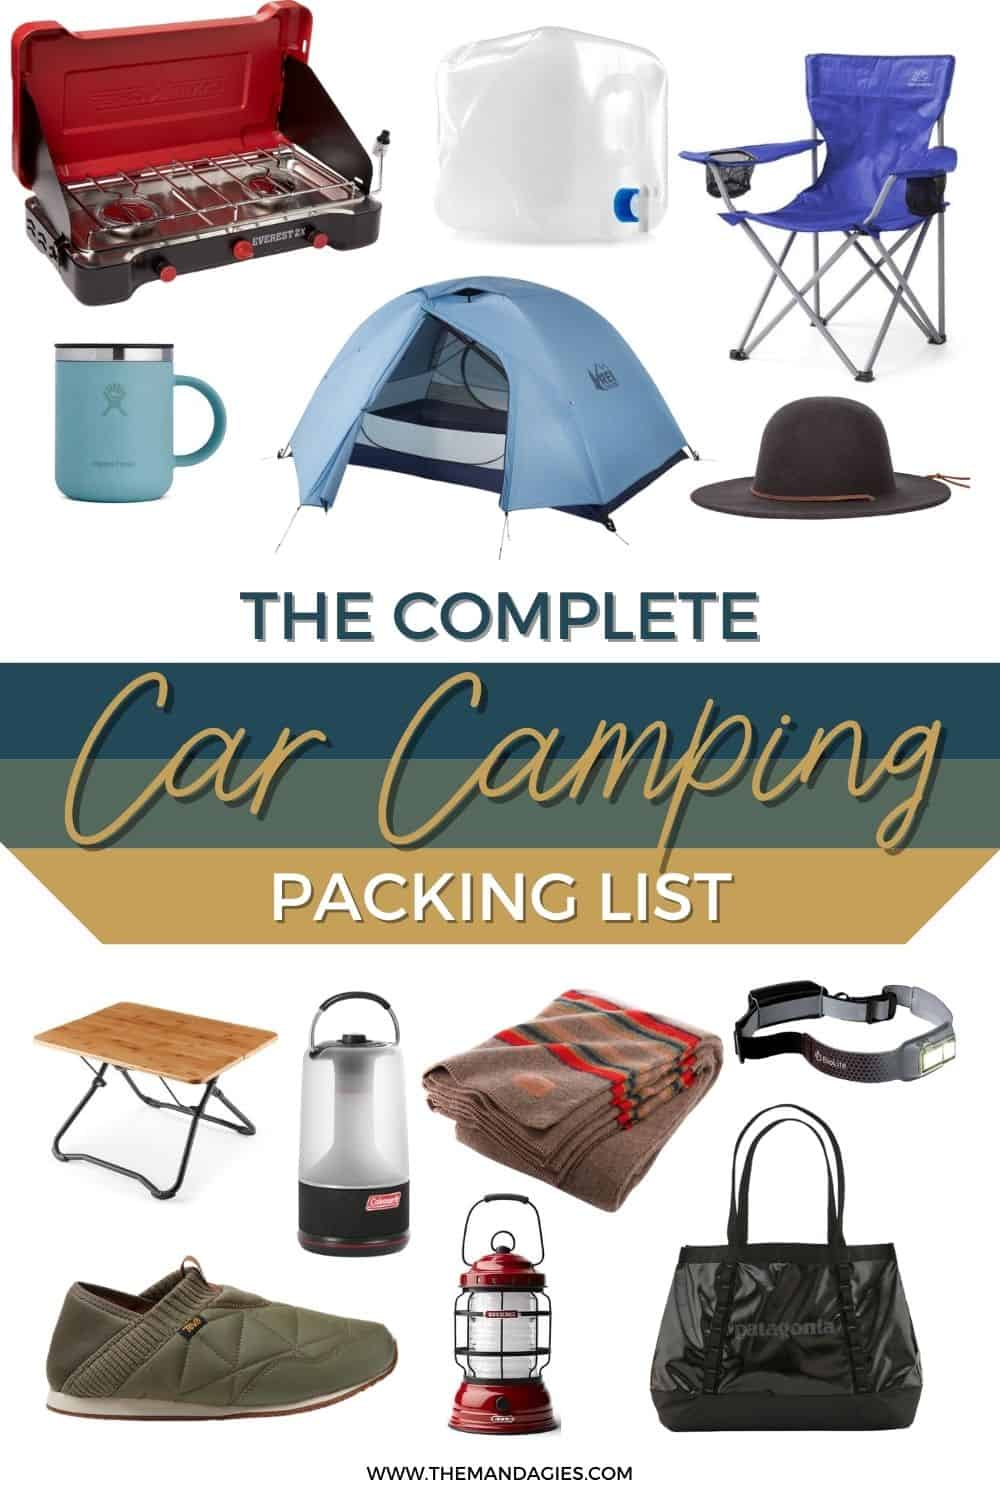 Looking for the perfect car camping packing list? Save this post for later, because we're sharing all the best camping essentials here! #camping #packinglist